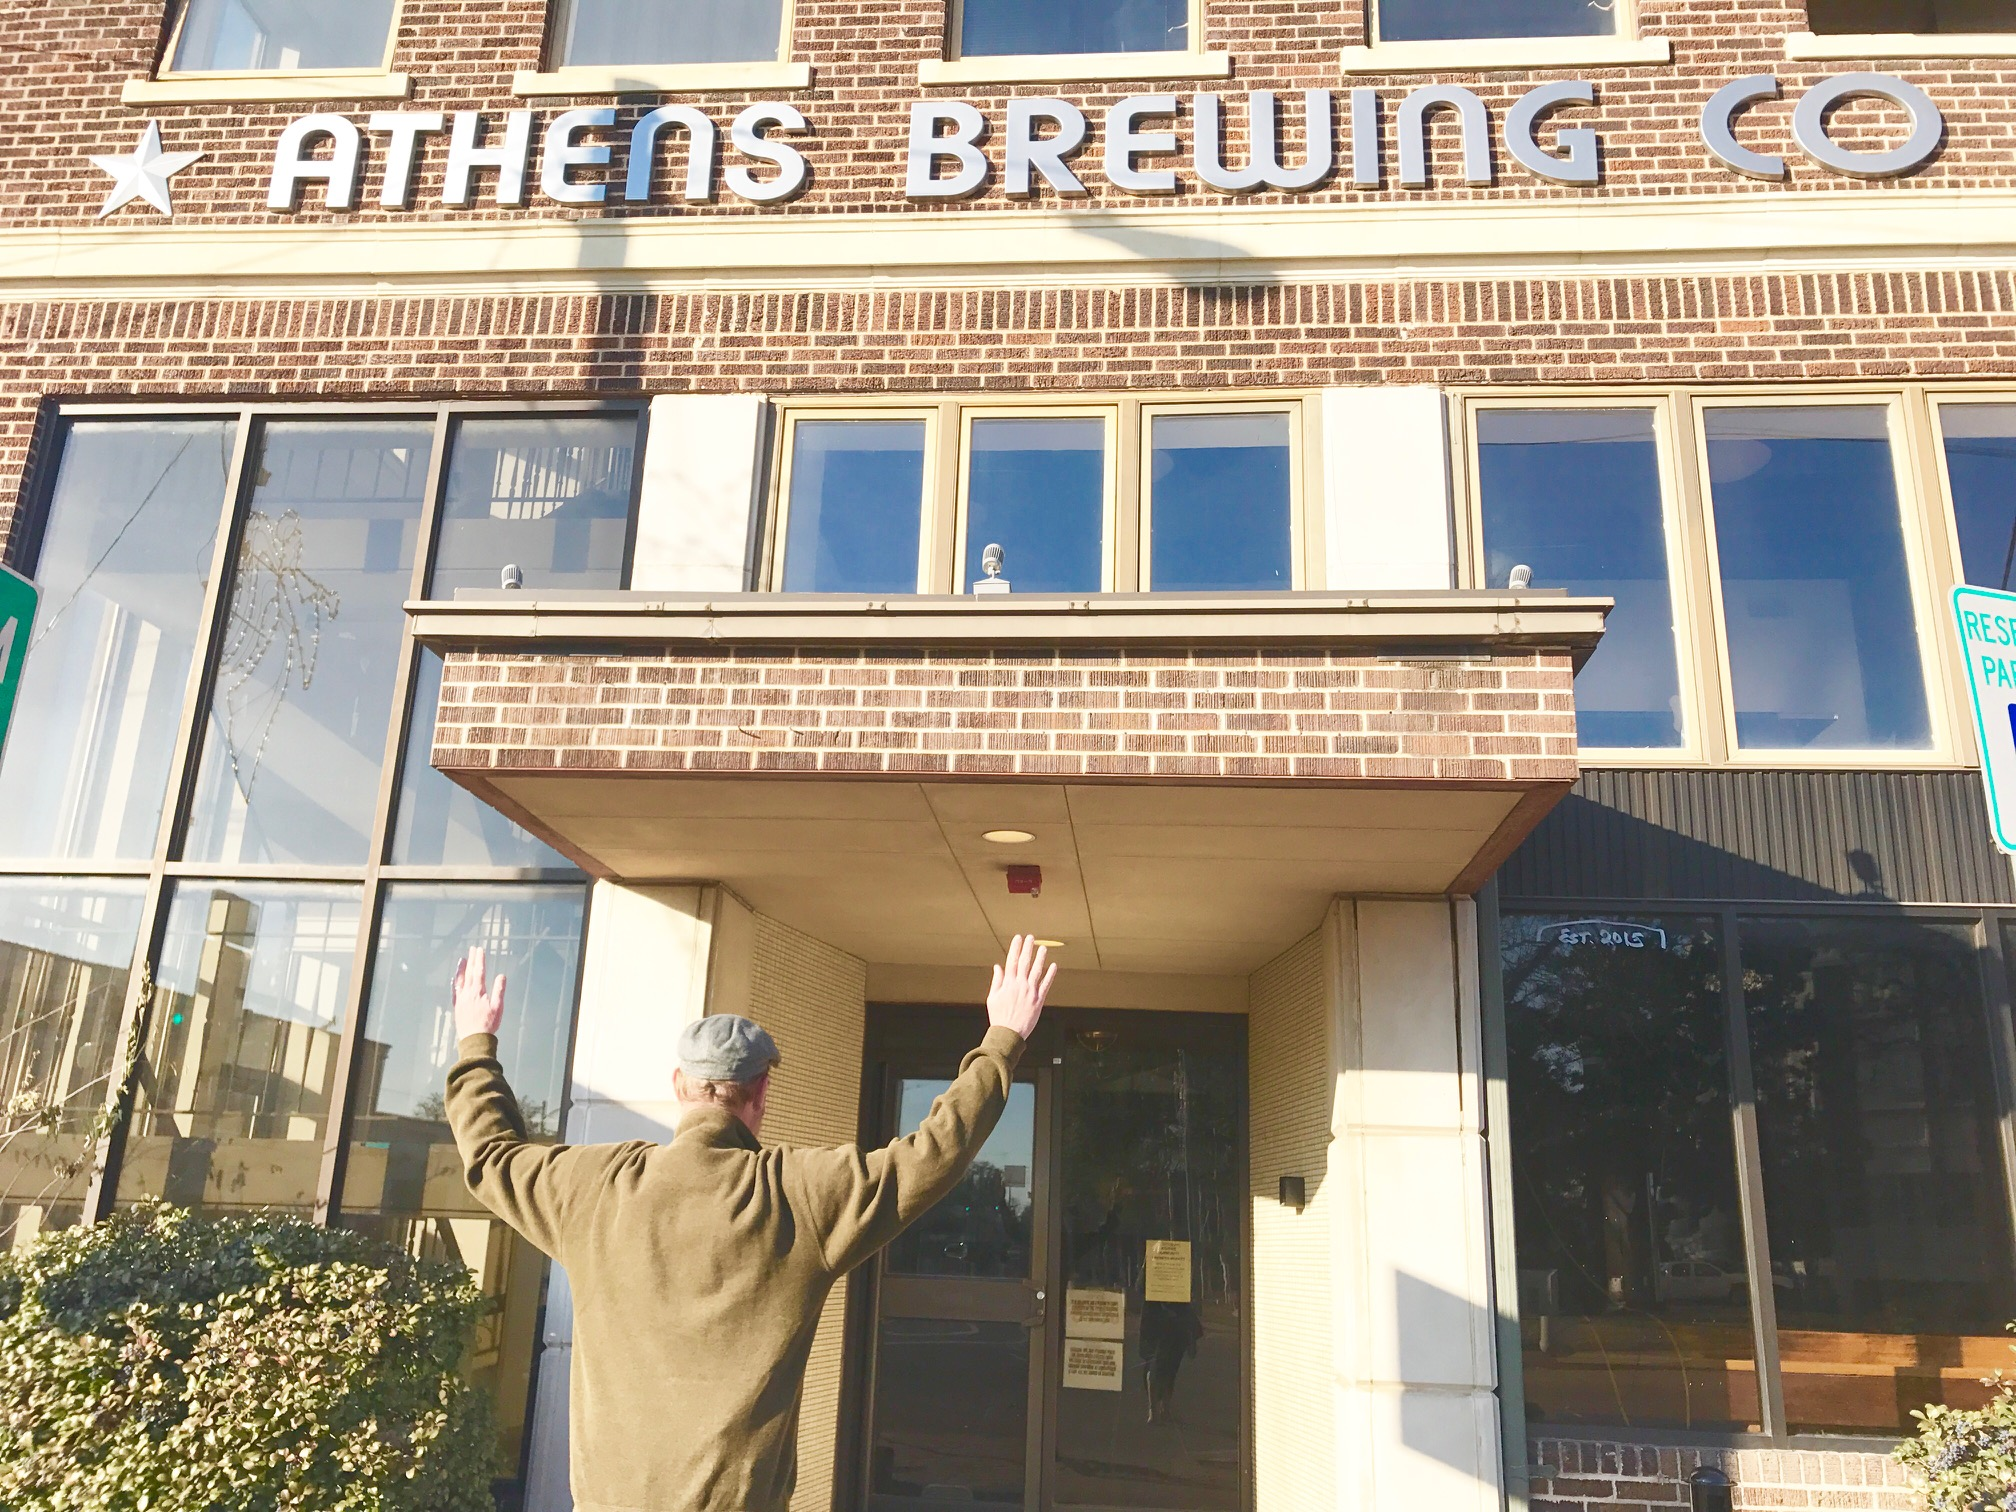 Athens Brewery